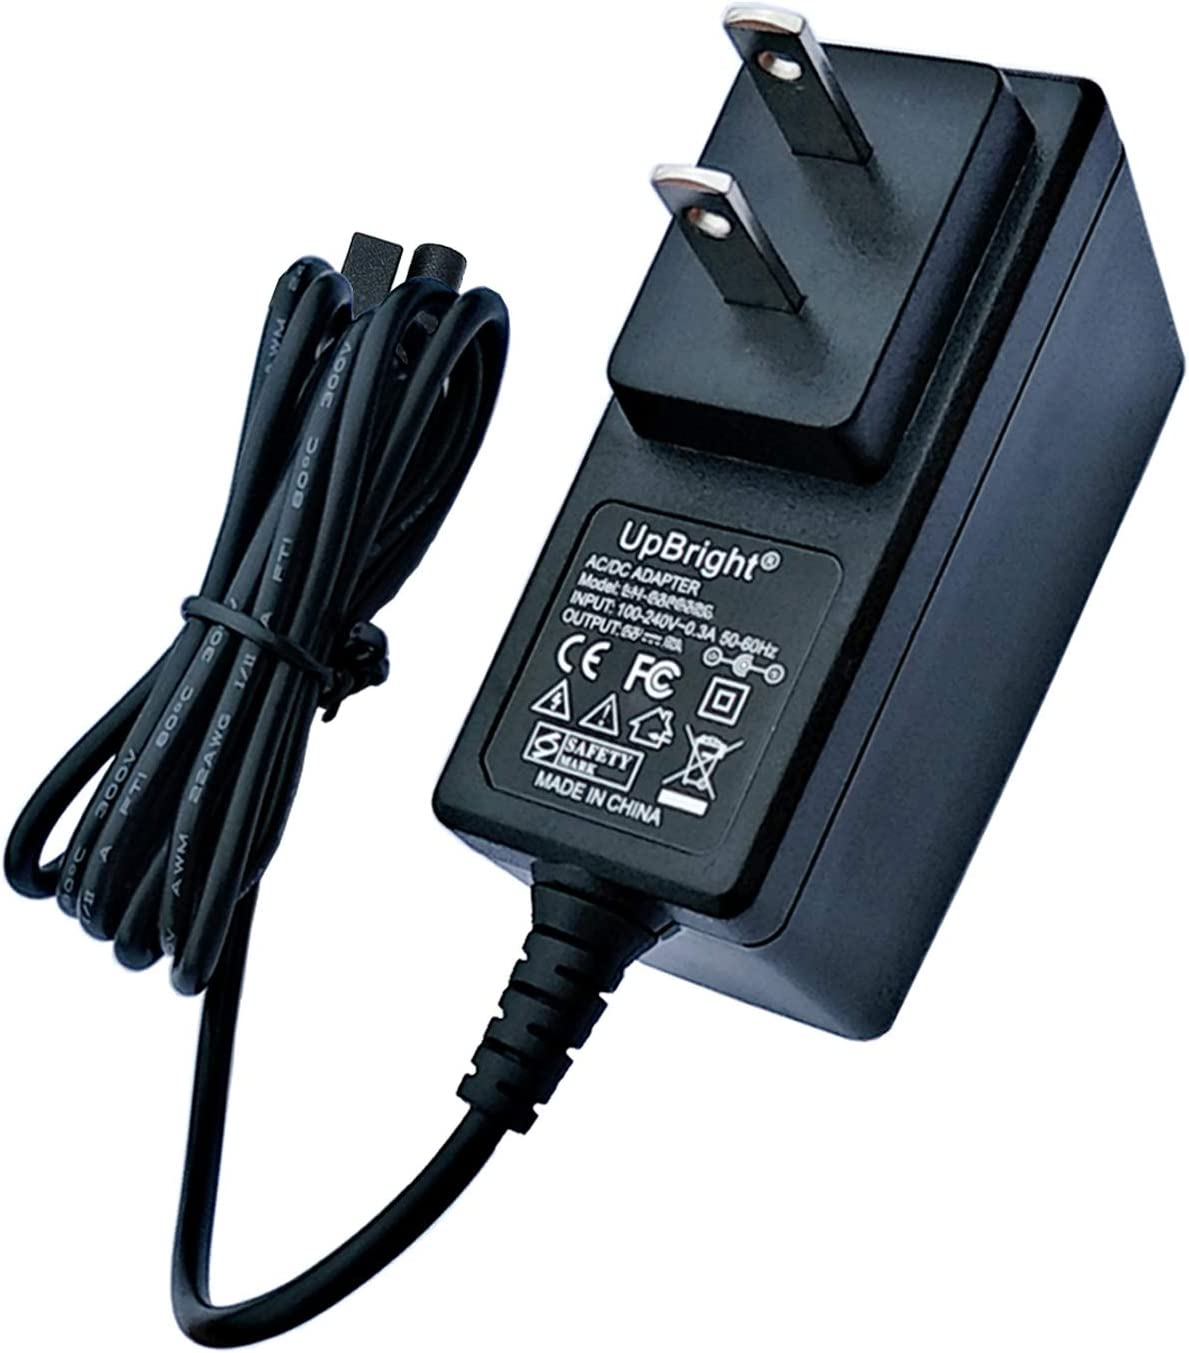 UpBright AC Adapter Compatible with Dirt Devil BD30025B BD30025 B Quick Flip Plus QuickFlip Pro BD30225 Wet Dry 16V Lithium Ion Vacuum Charger 440008693 ZD6E182040US HF-O-01 ZD6E1820330US 18.2V Power